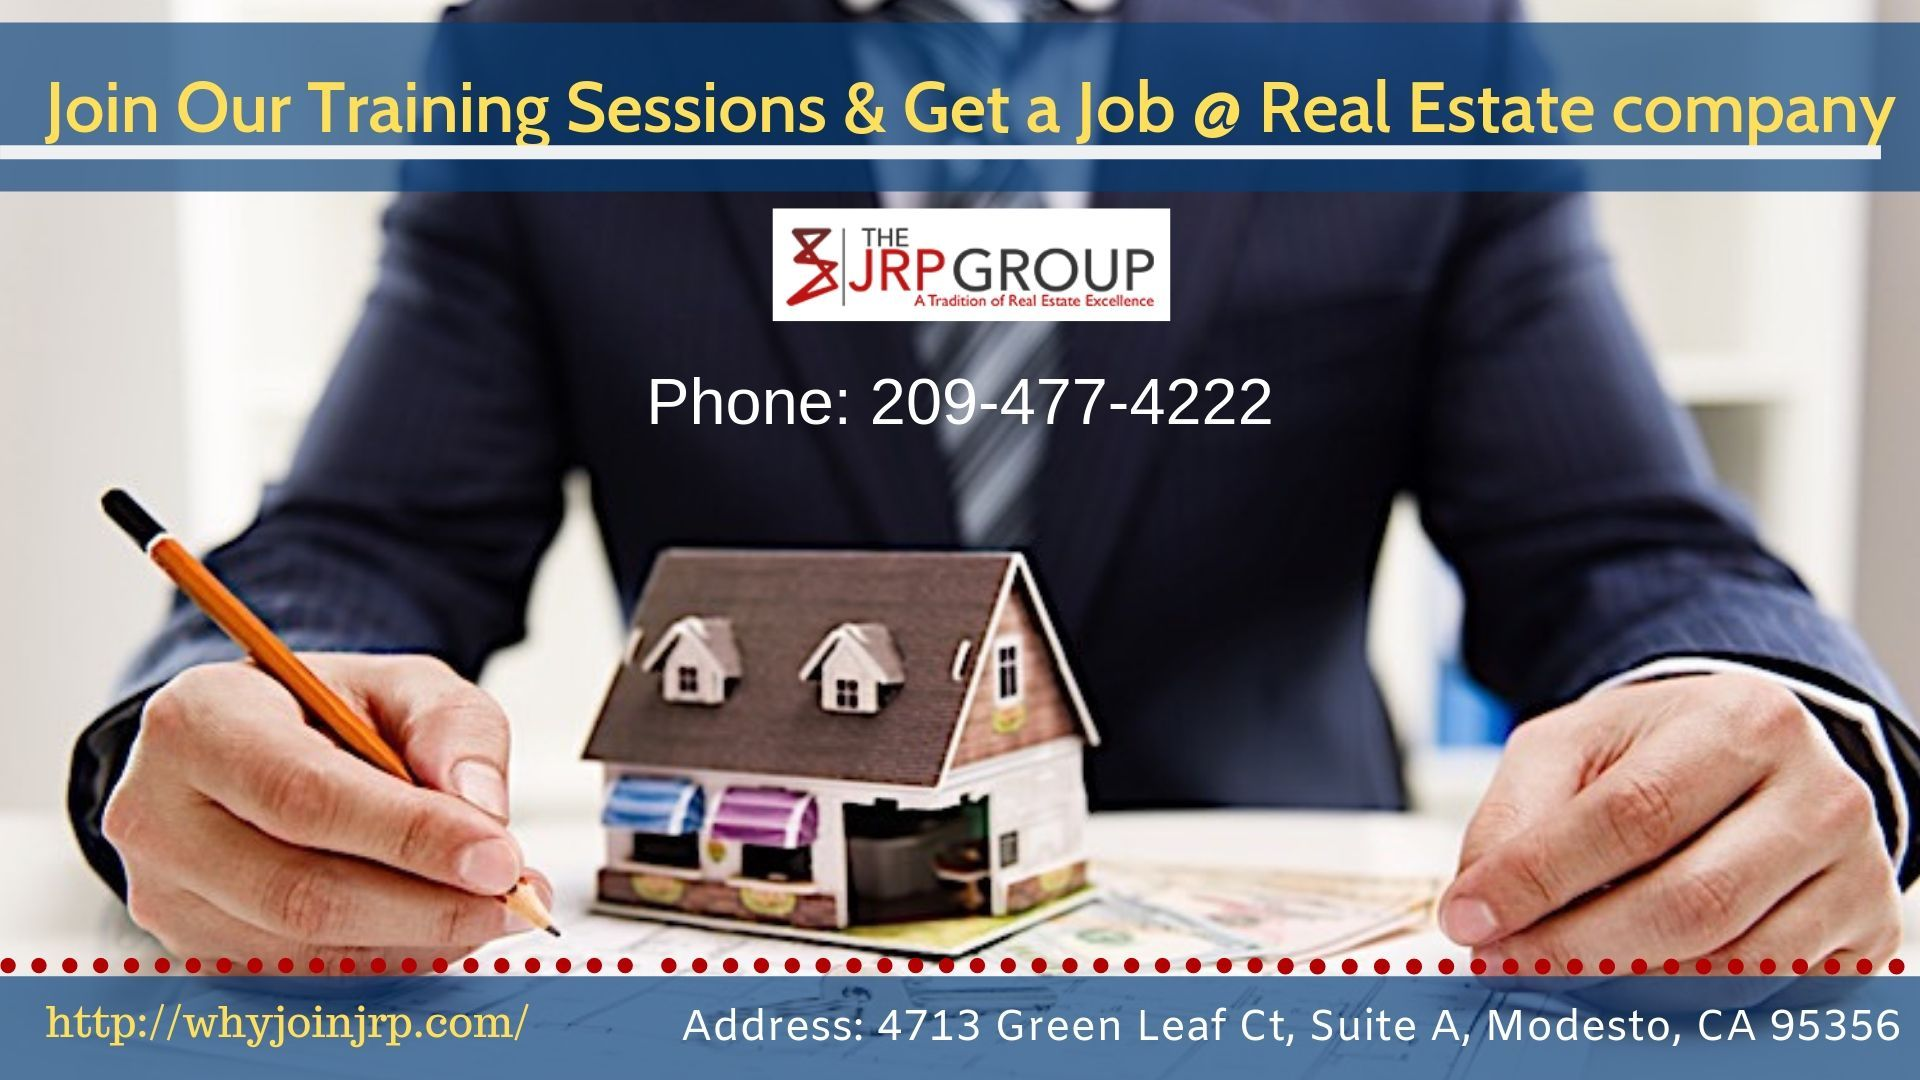 Training Sessions For Real Estate Company Real Estate Real Estate Companies Order Business Cards